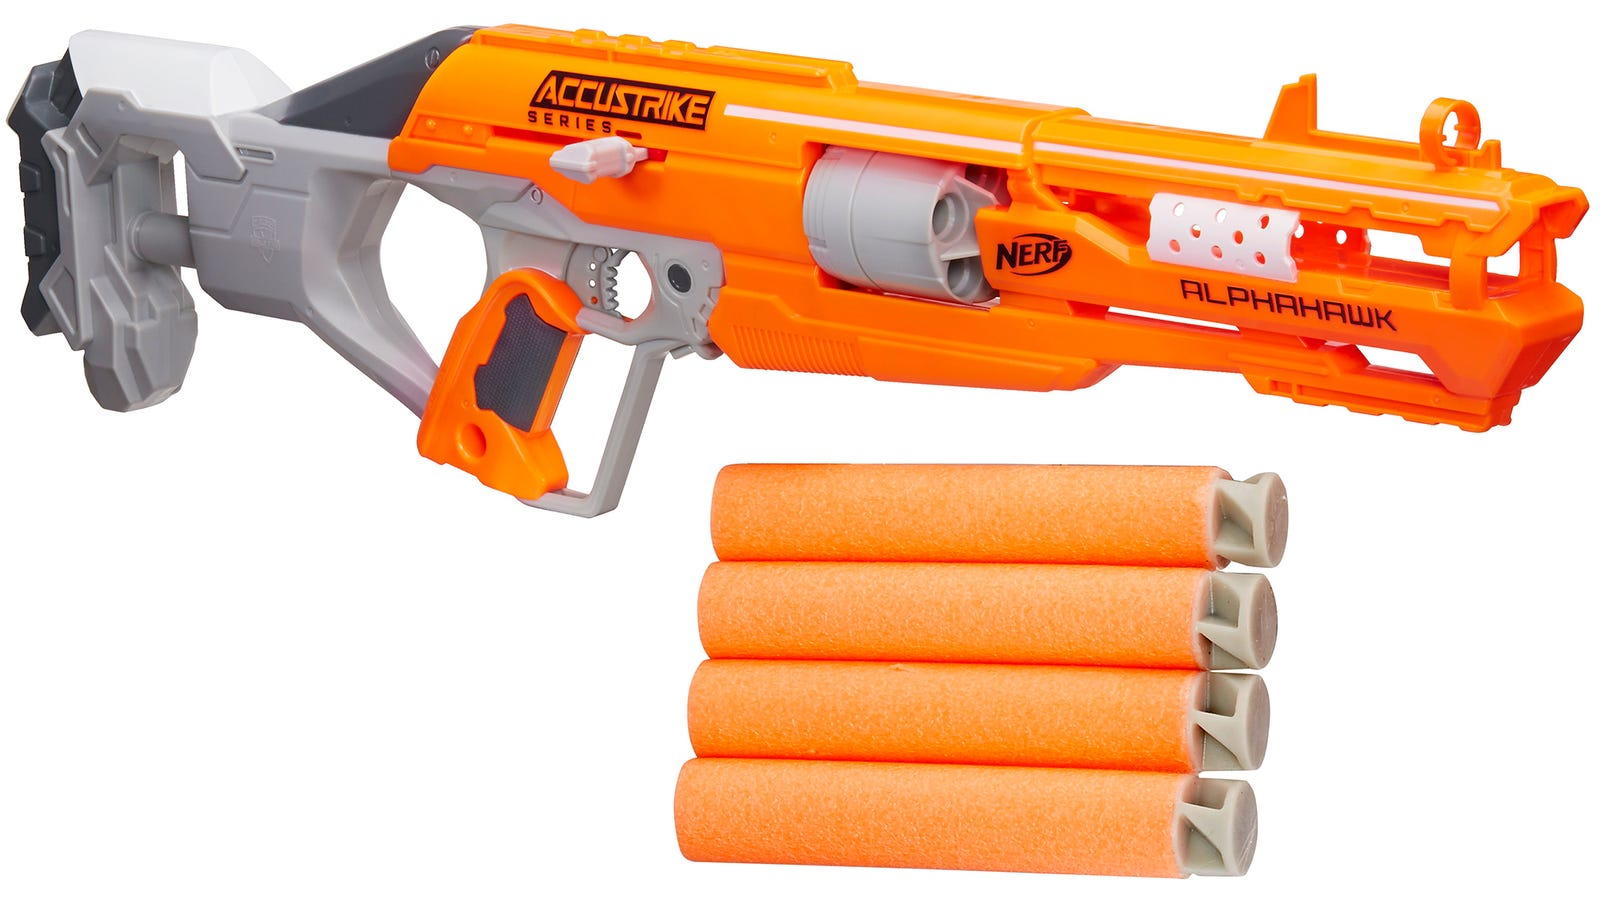 Nerf S New Accustrike Blasters Use Redesigned Darts For